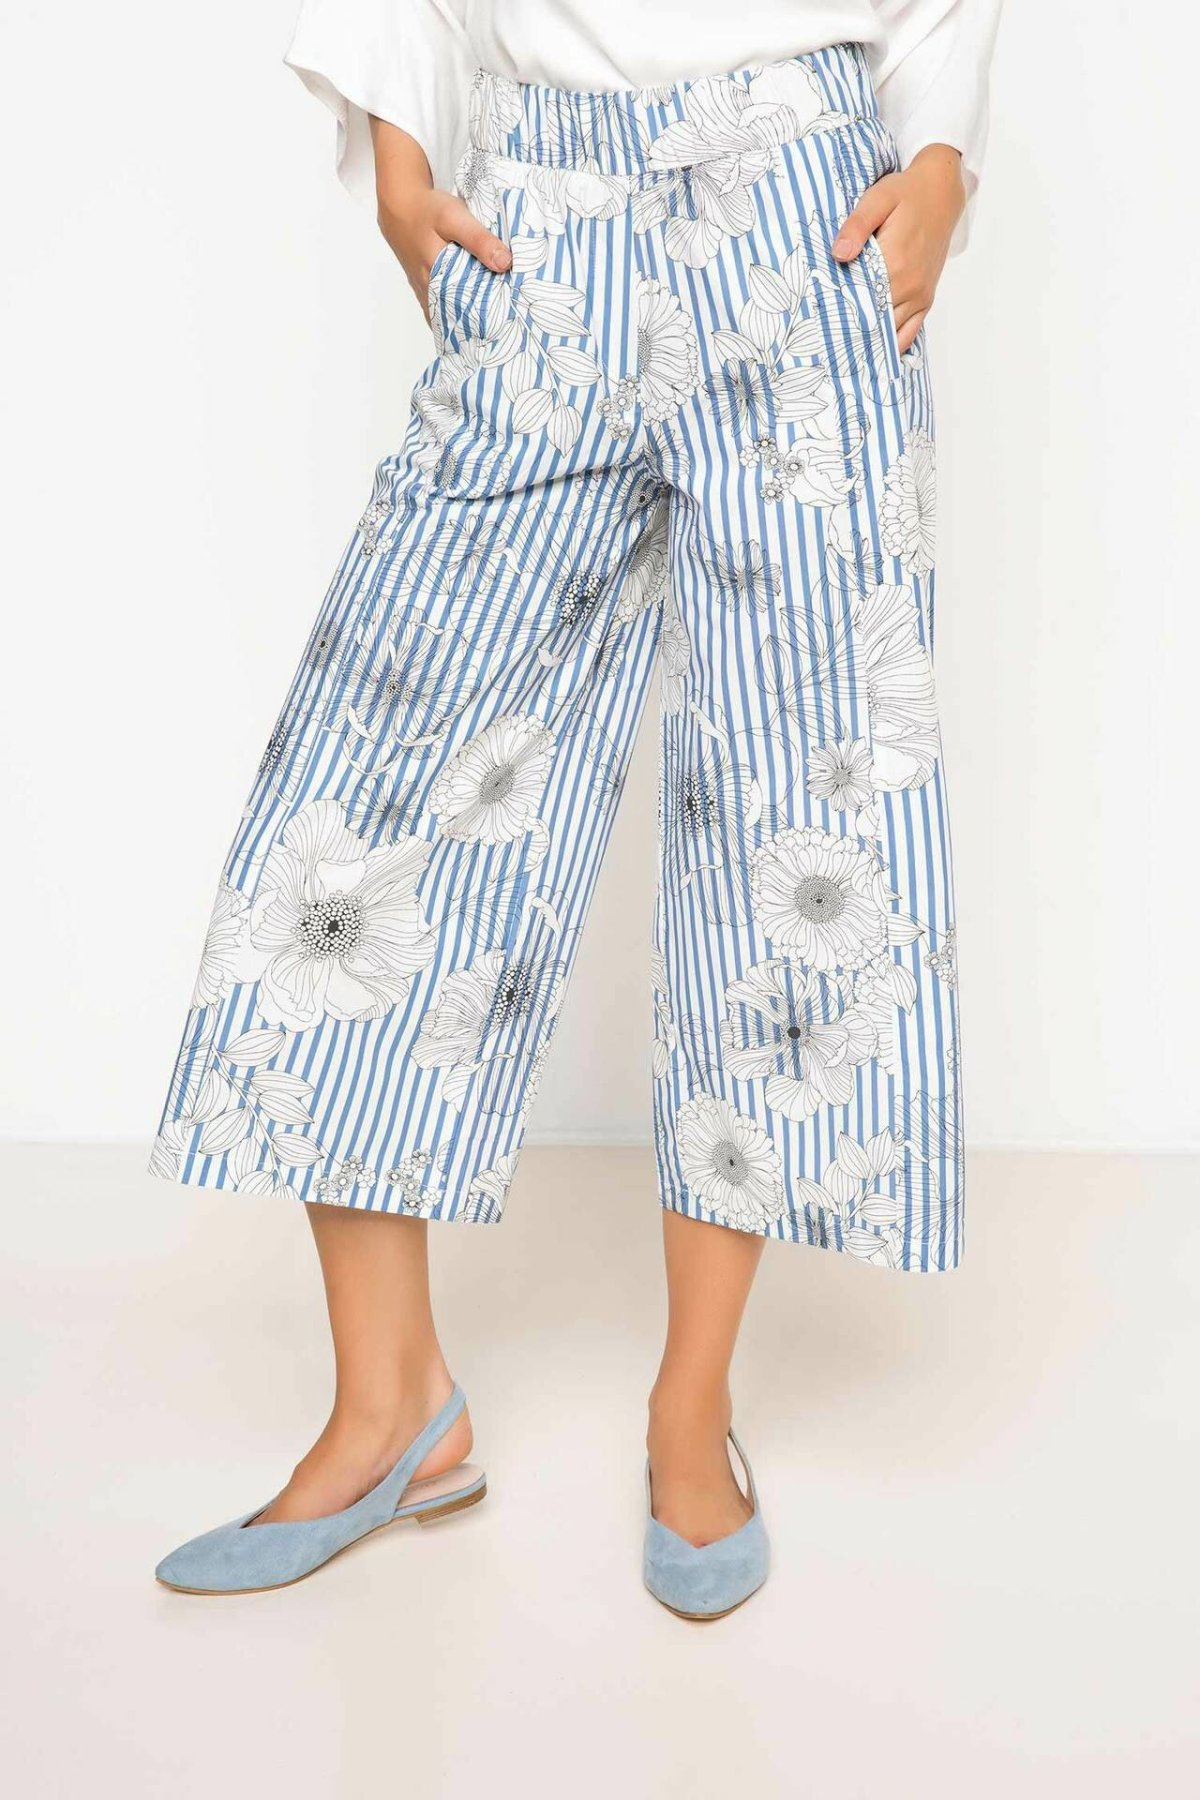 DeFacto Loose Striped Flowers Trousers Female Casual Comfort Crop Pants High Qualilty Loose Wide Leg Pant Ladies -I1706AZ17AU